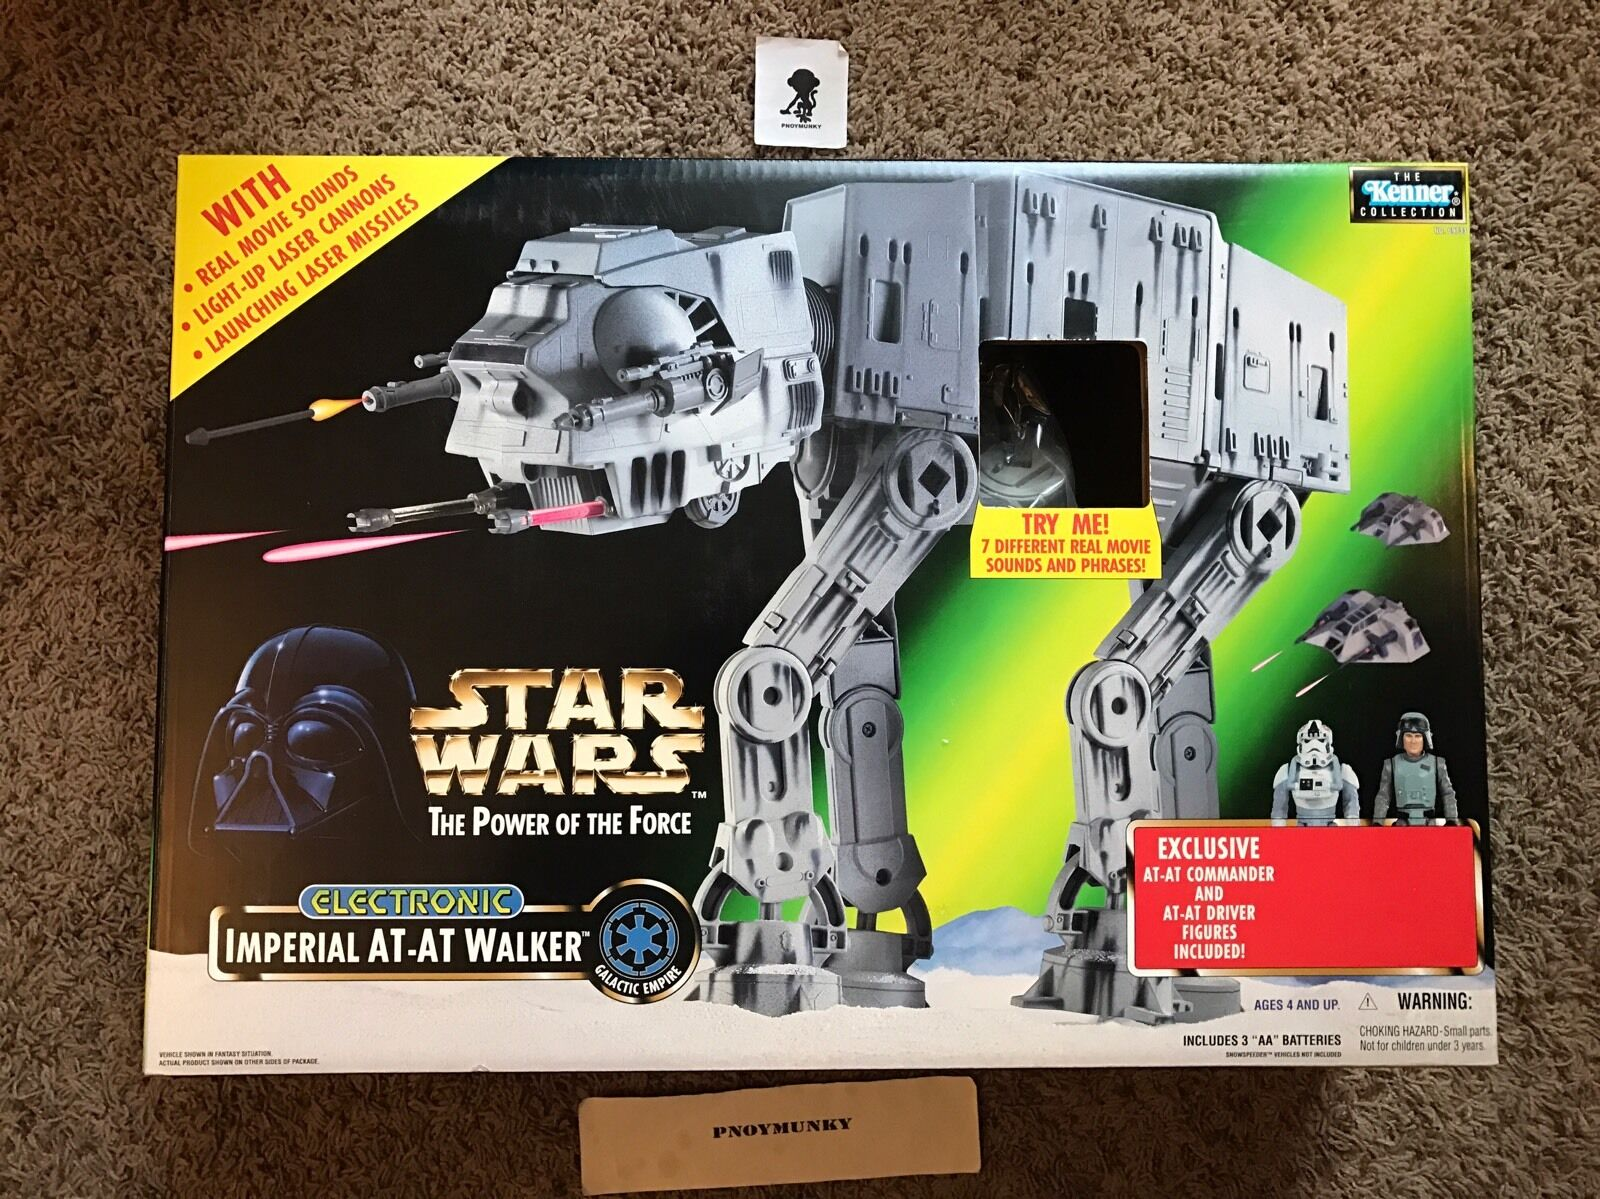 STAR WARS POWER OF THE FORCE FORCE FORCE ELECTRONIC IMPERIAL AT-AT WALKER ERROR VARIANT 9d95a3